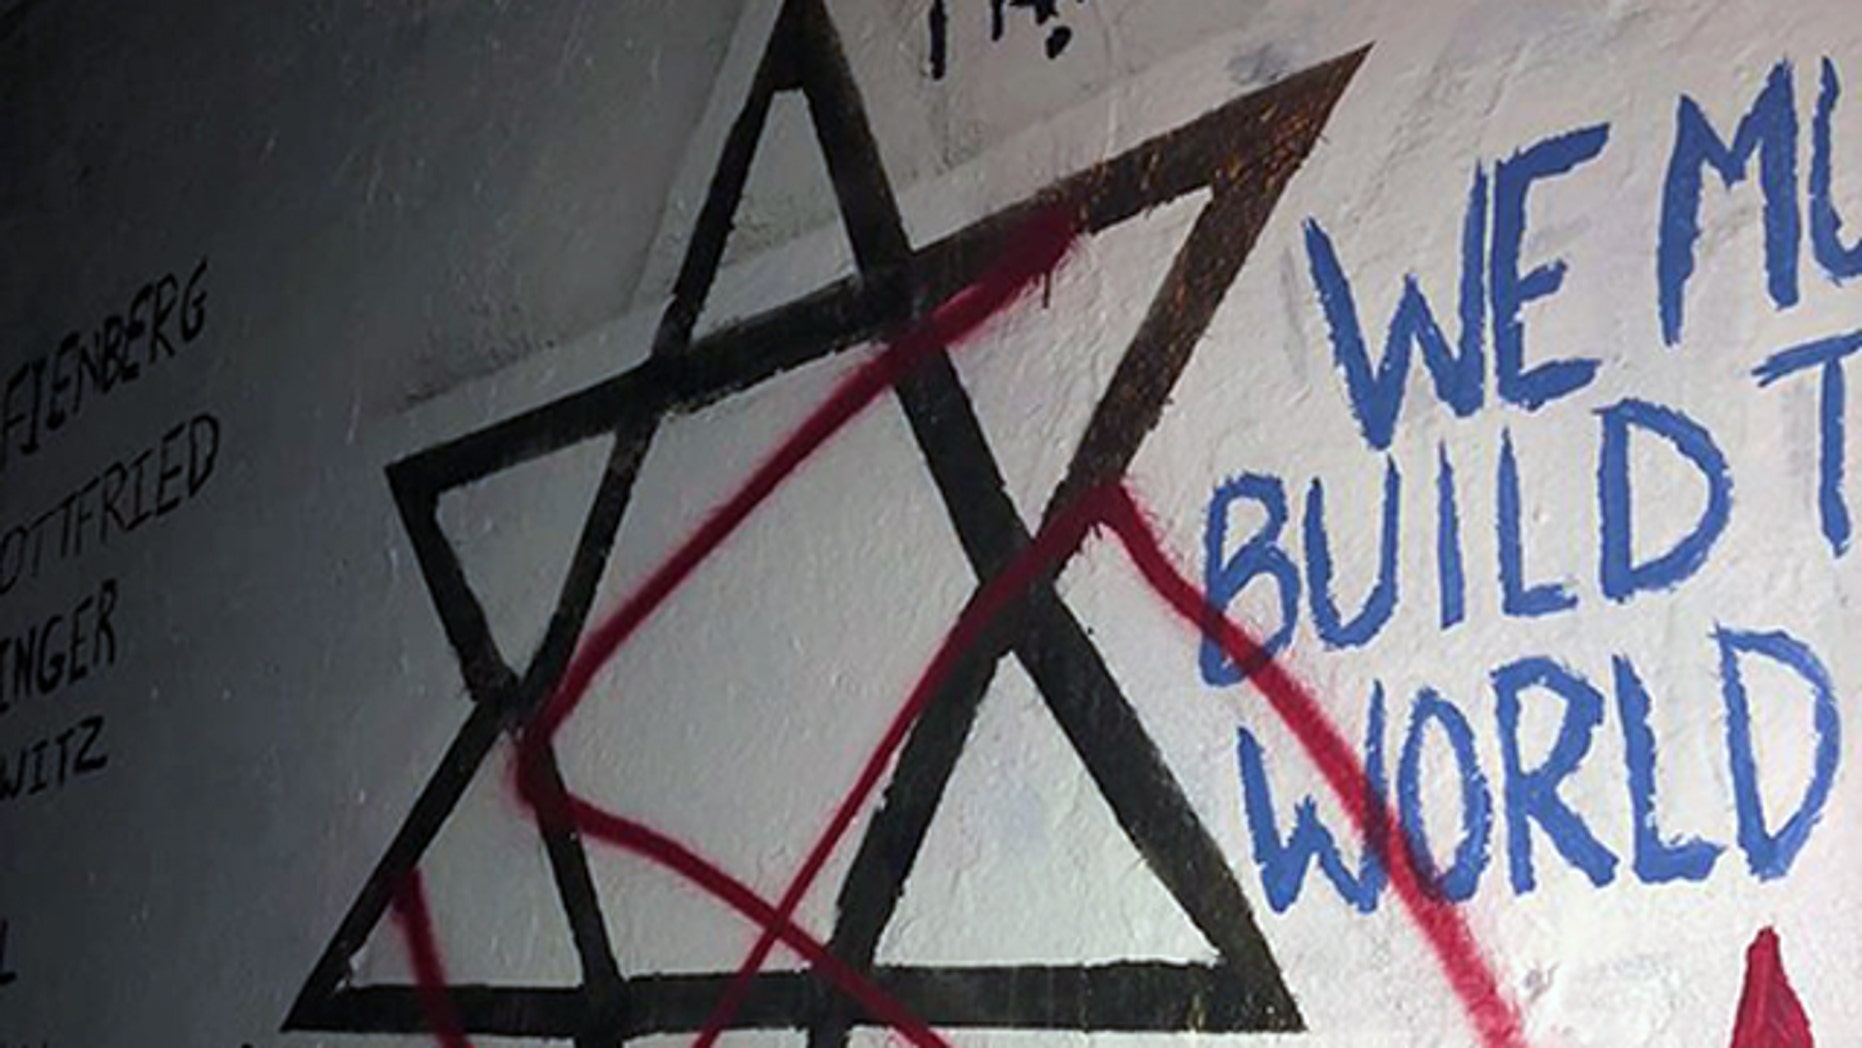 A swastika is seen covering a Star of David that was painted as part of a tribute mural on the campus of Duke University in Durham, N.C.